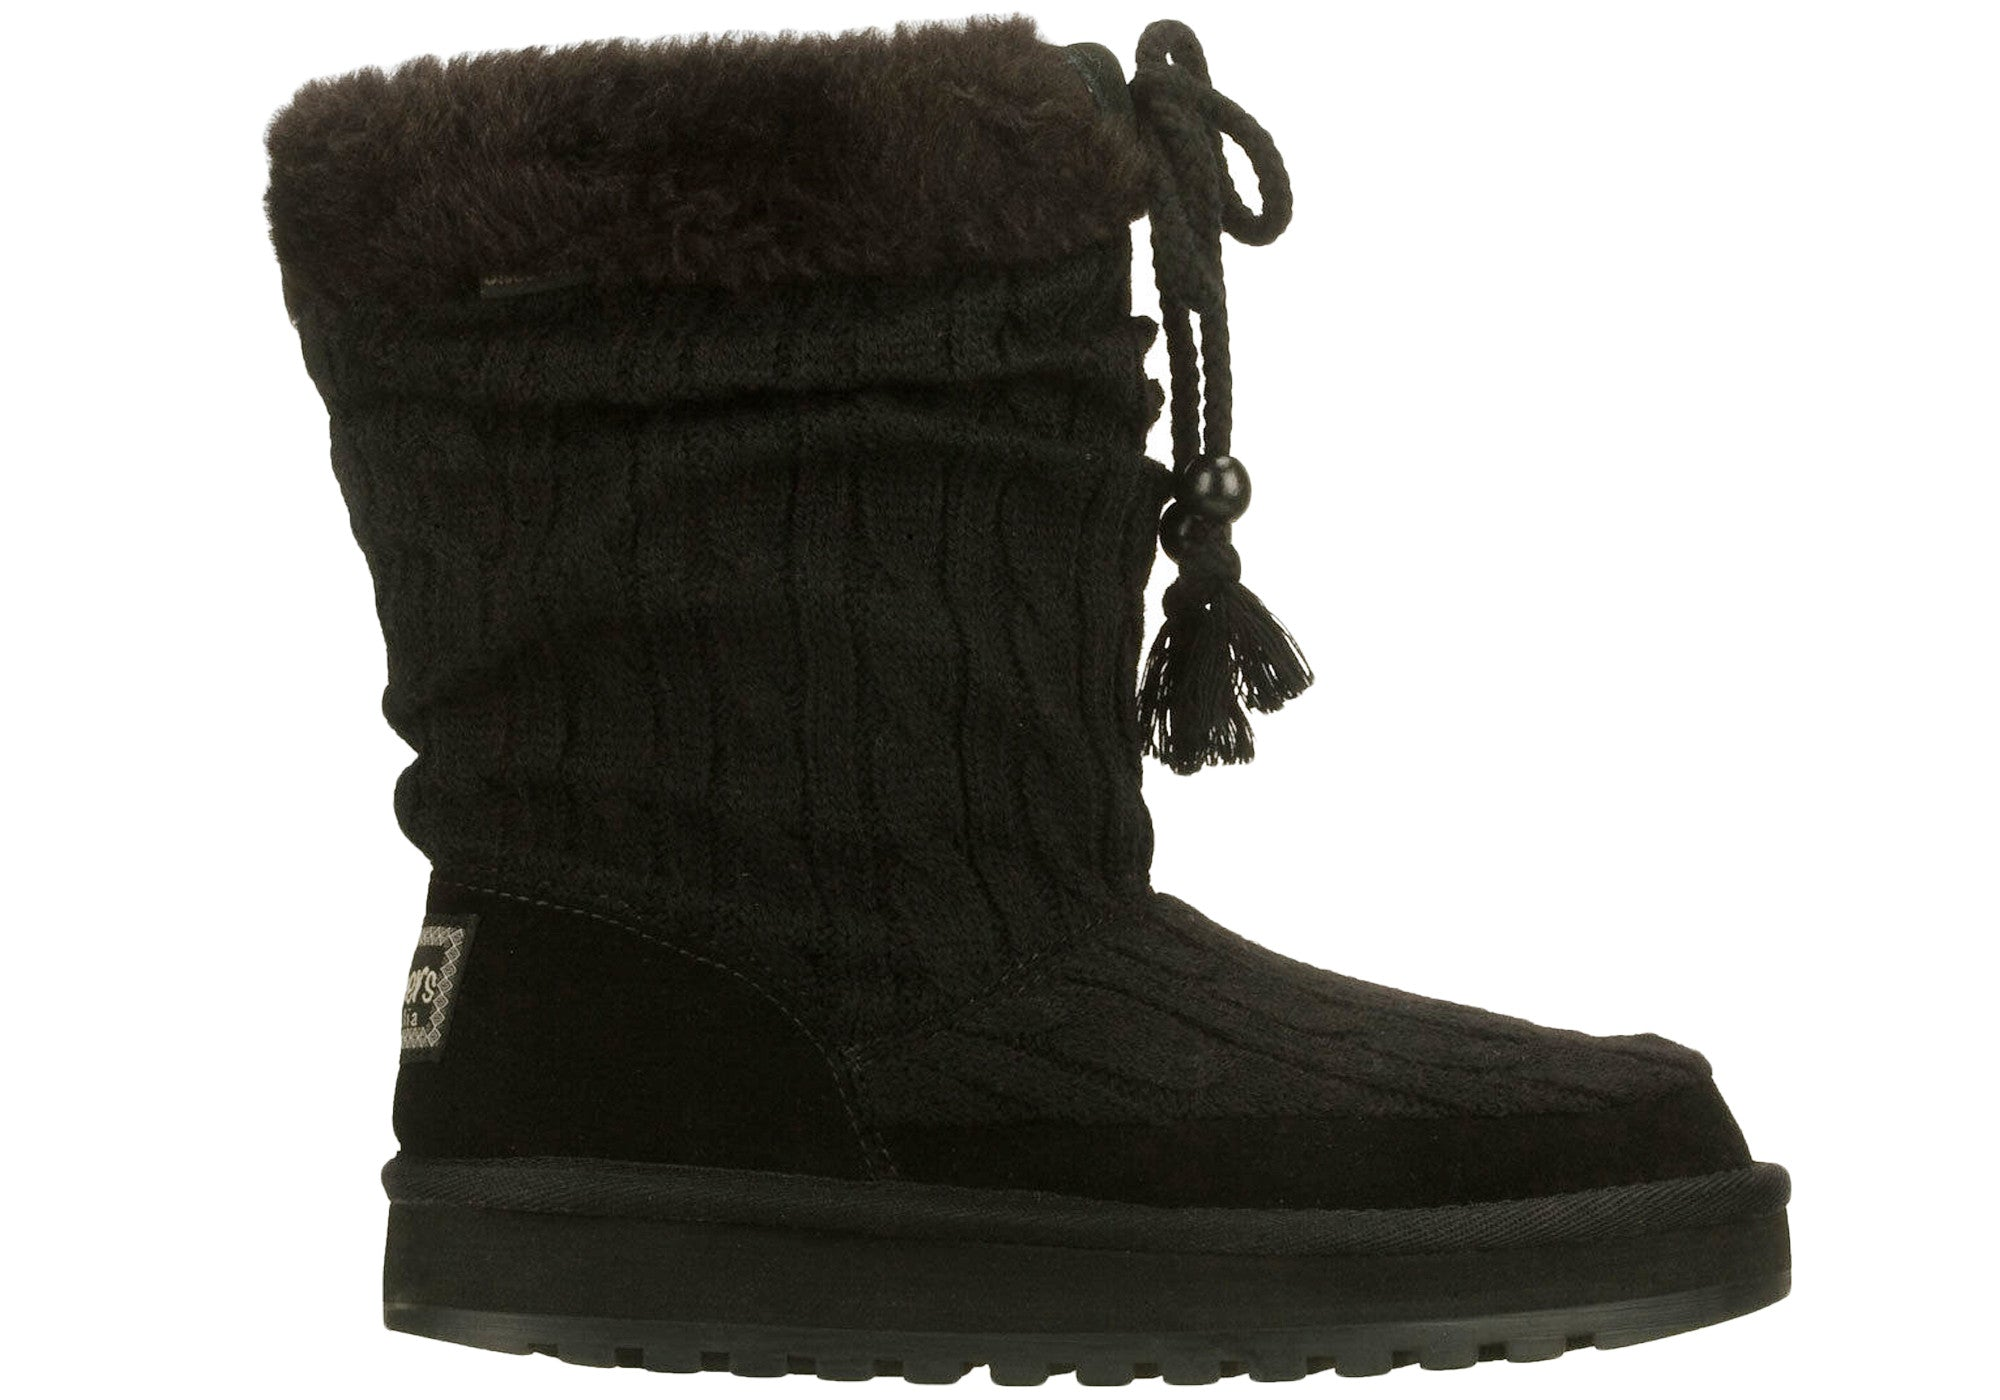 Skechers Keepsakes Blur Womens UGG/Warm Ankle Boots